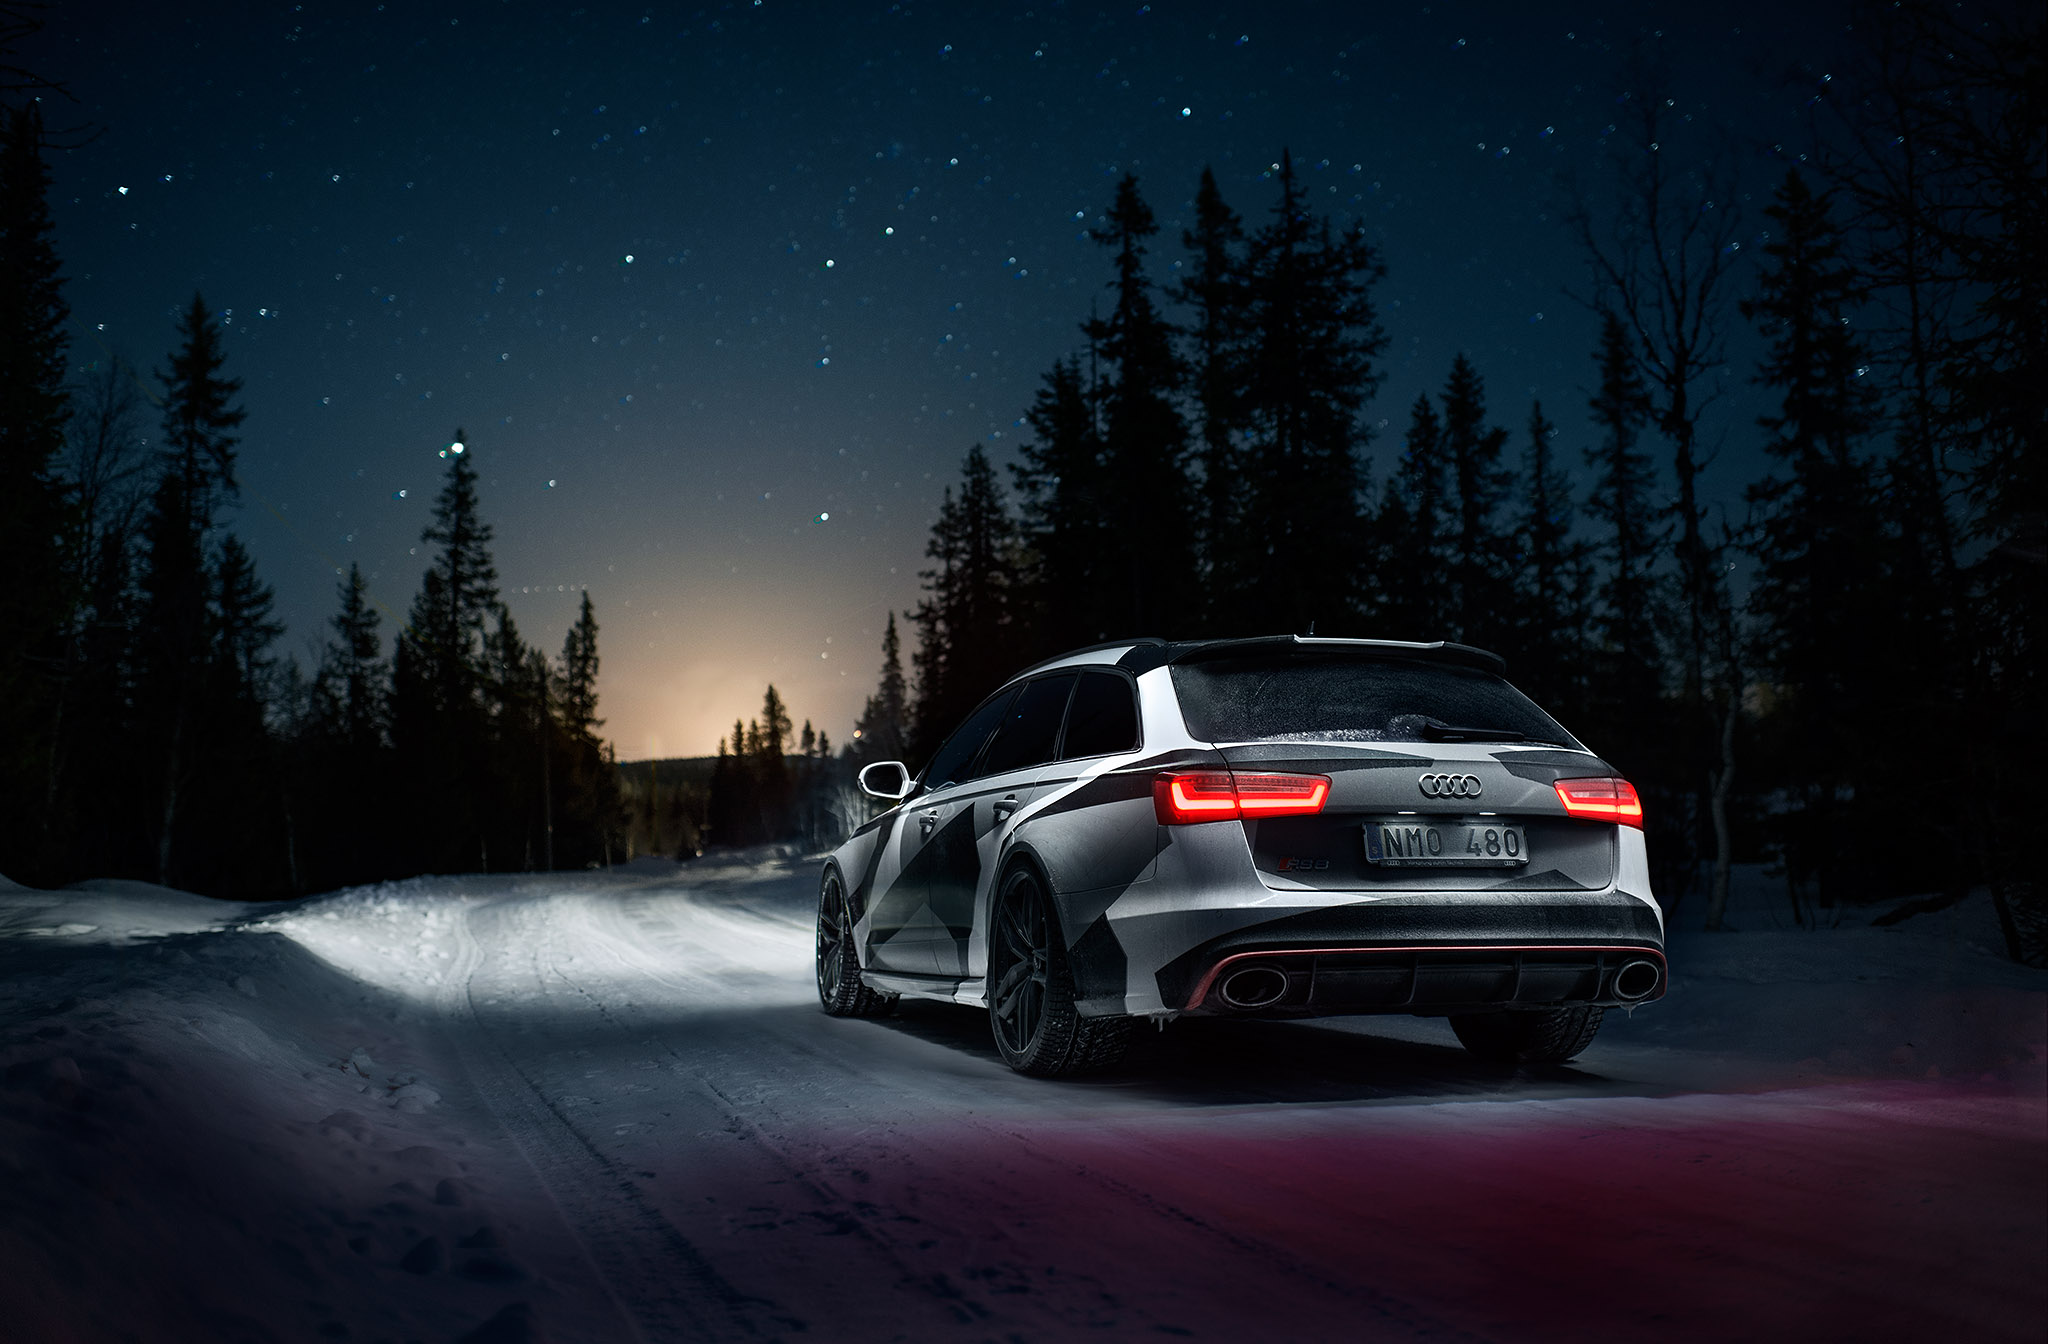 Jon Olsson Gives His Audi Rs6 Avant The Famous Camowrap